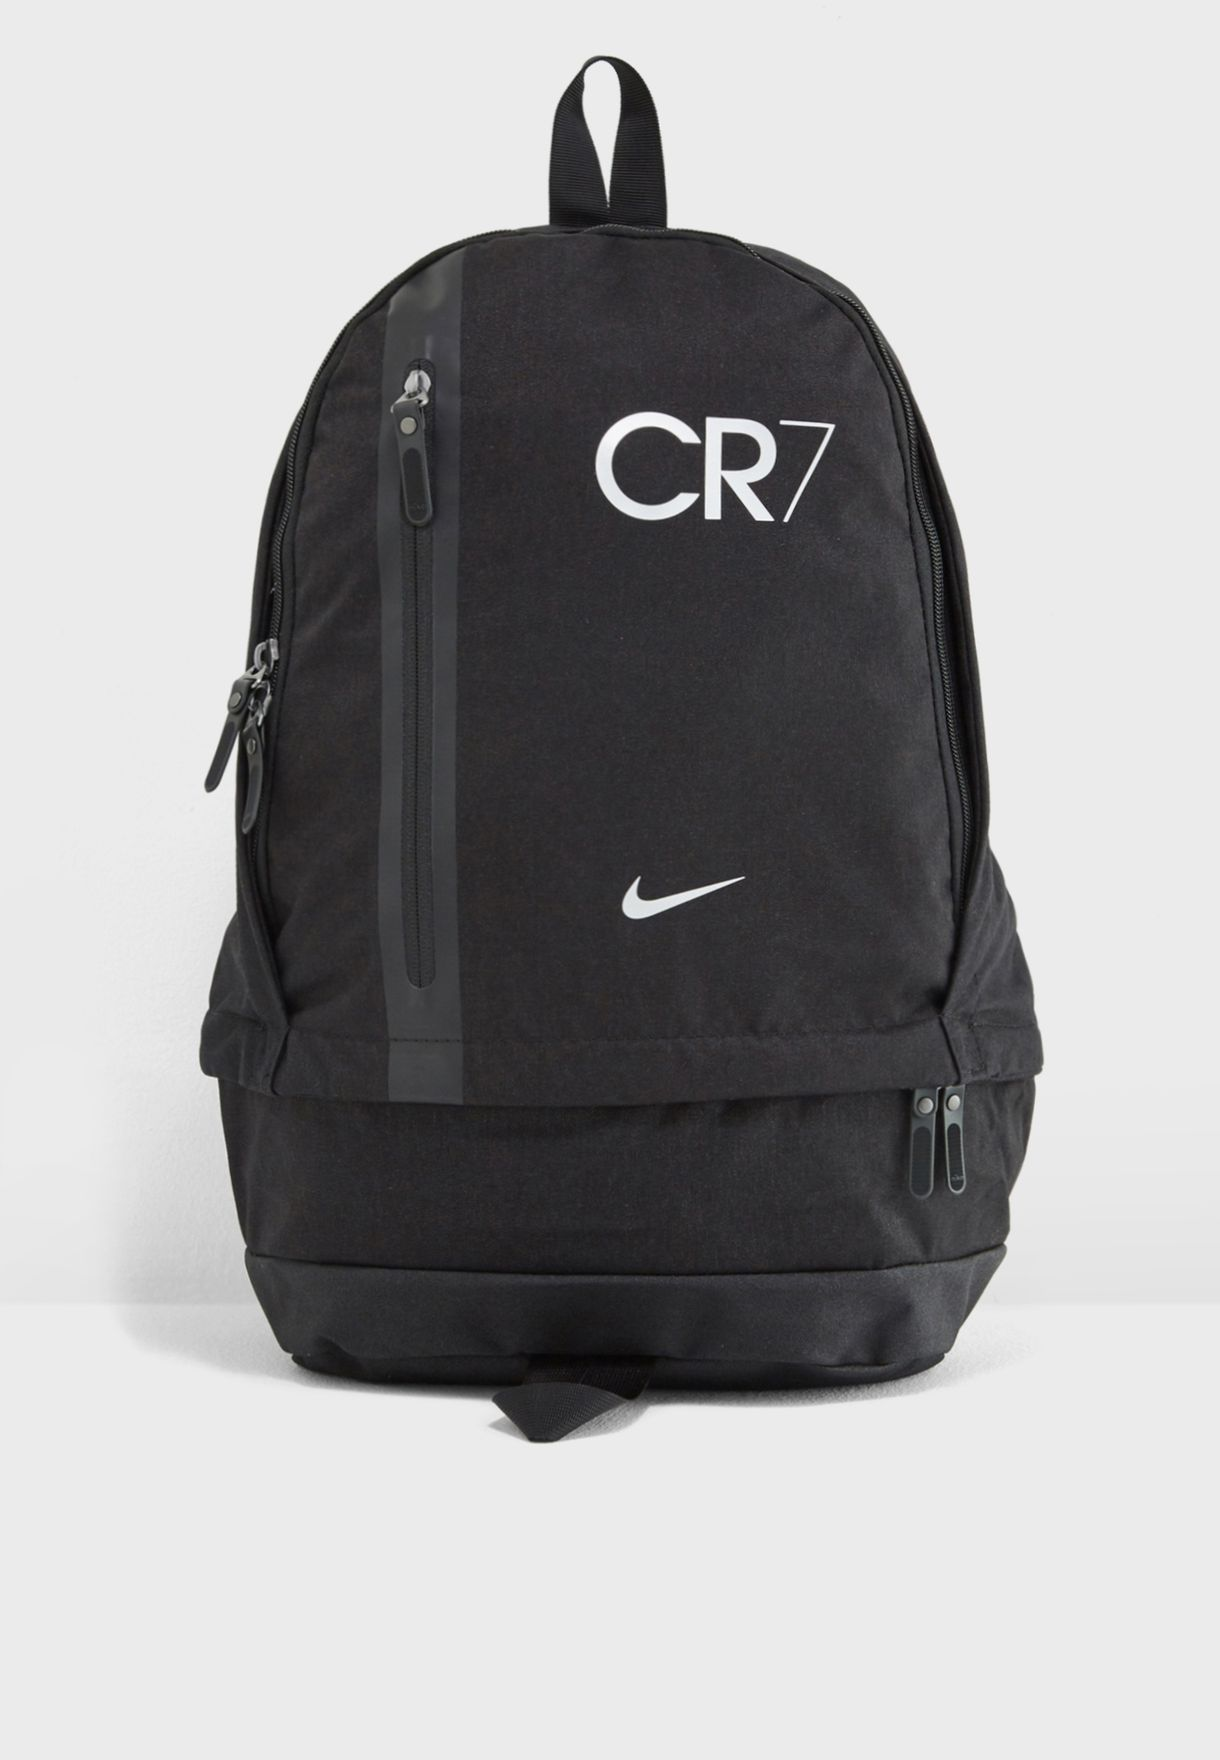 219633f455a77 Shop Nike black CR7 Cheyenne Backpack BA5562-010 for Men in UAE ...